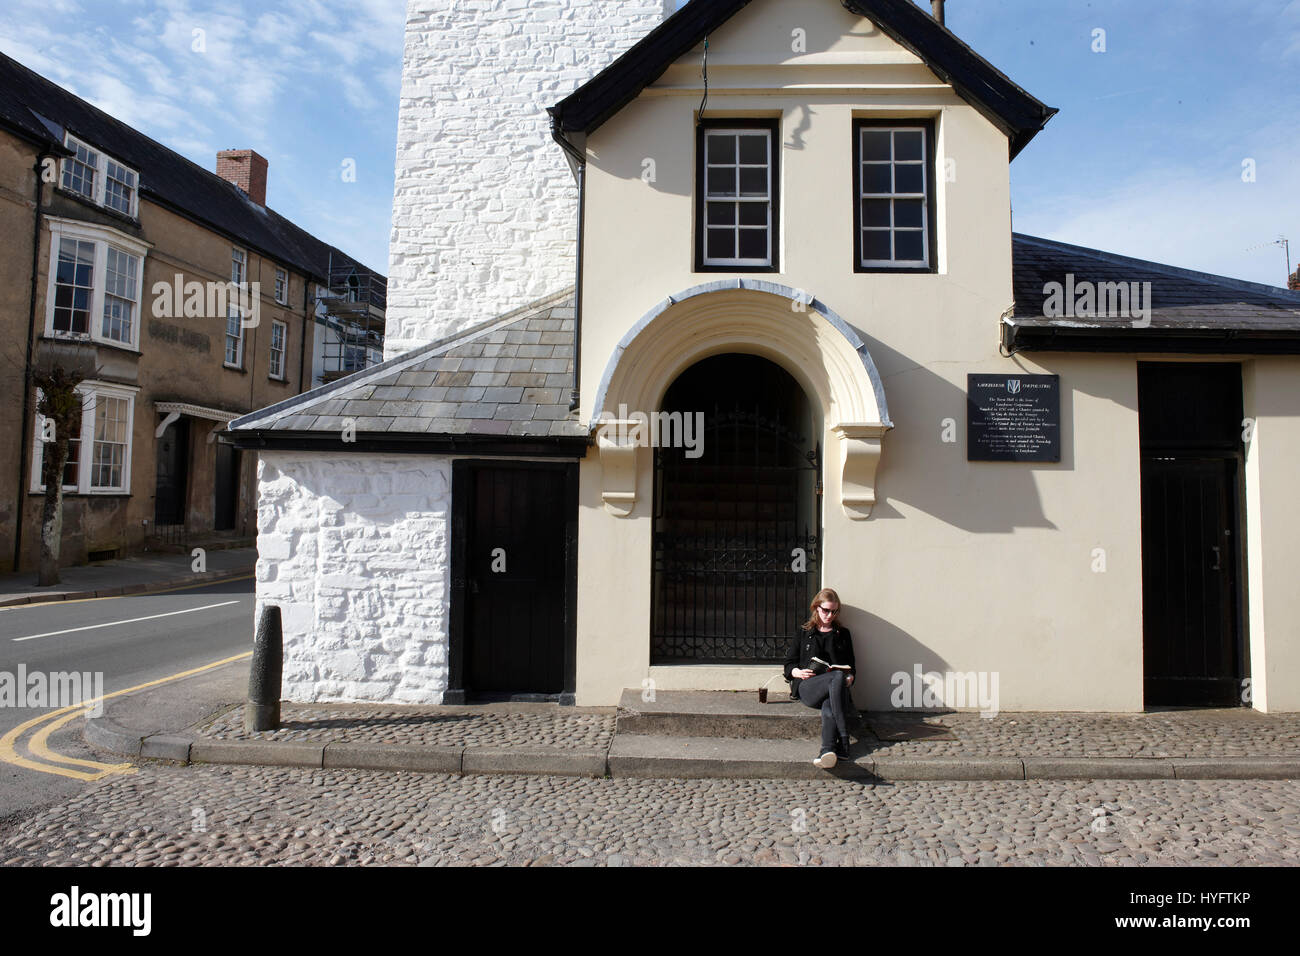 Lady Reading in the sun outside a building, Book Festival, Laugharne - Stock Image